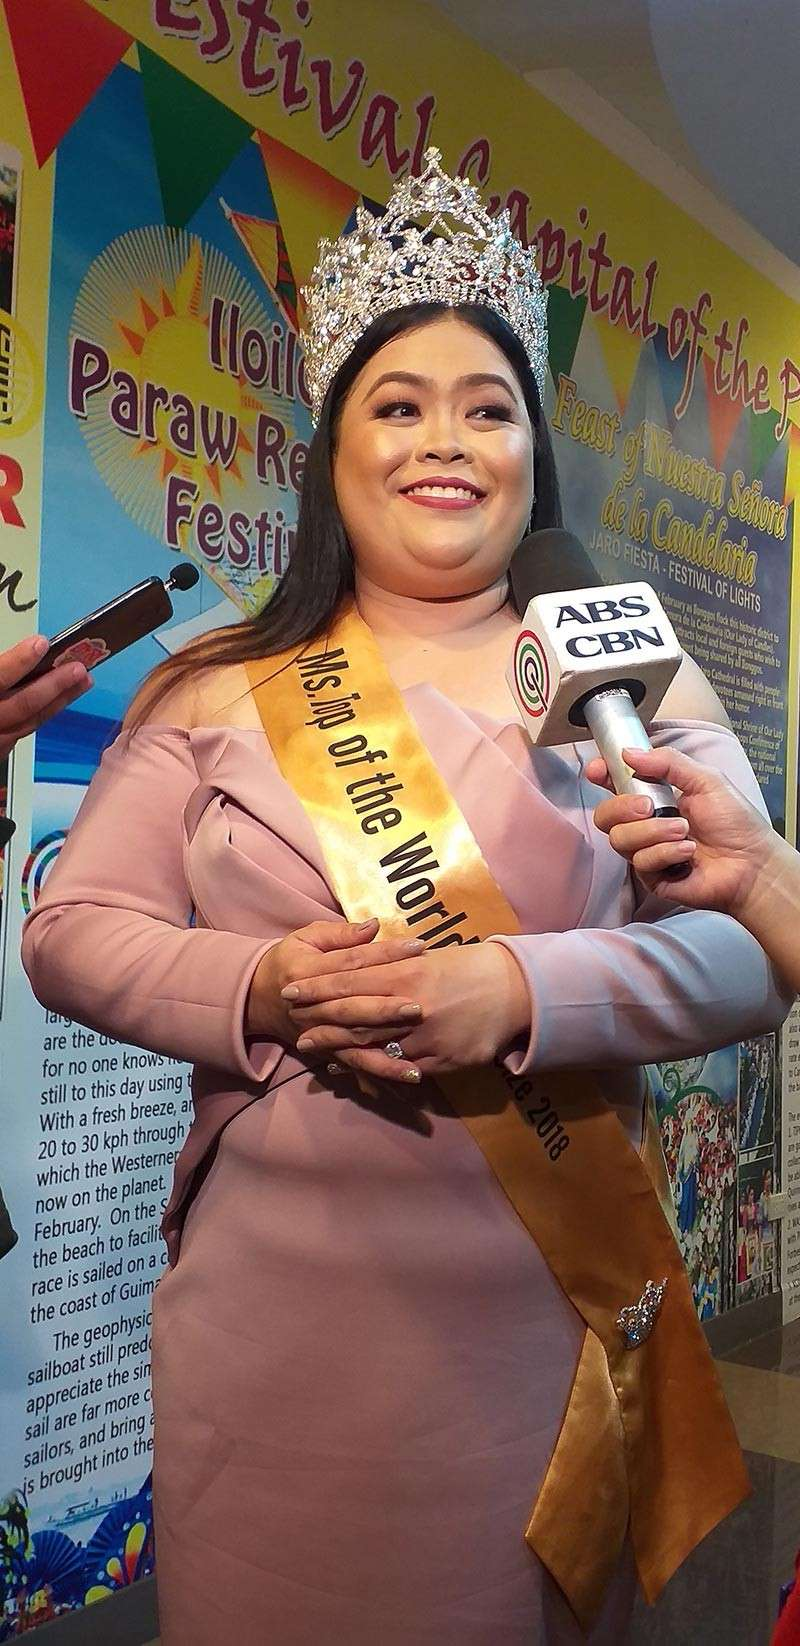 ILOILO. Miss Top of the World-Plus Size 2018 winner Charlene Pagayon Rosco in a media interview on Monday, December 3, at the Iloilo City Hall. (Carolyn Jane Abello)